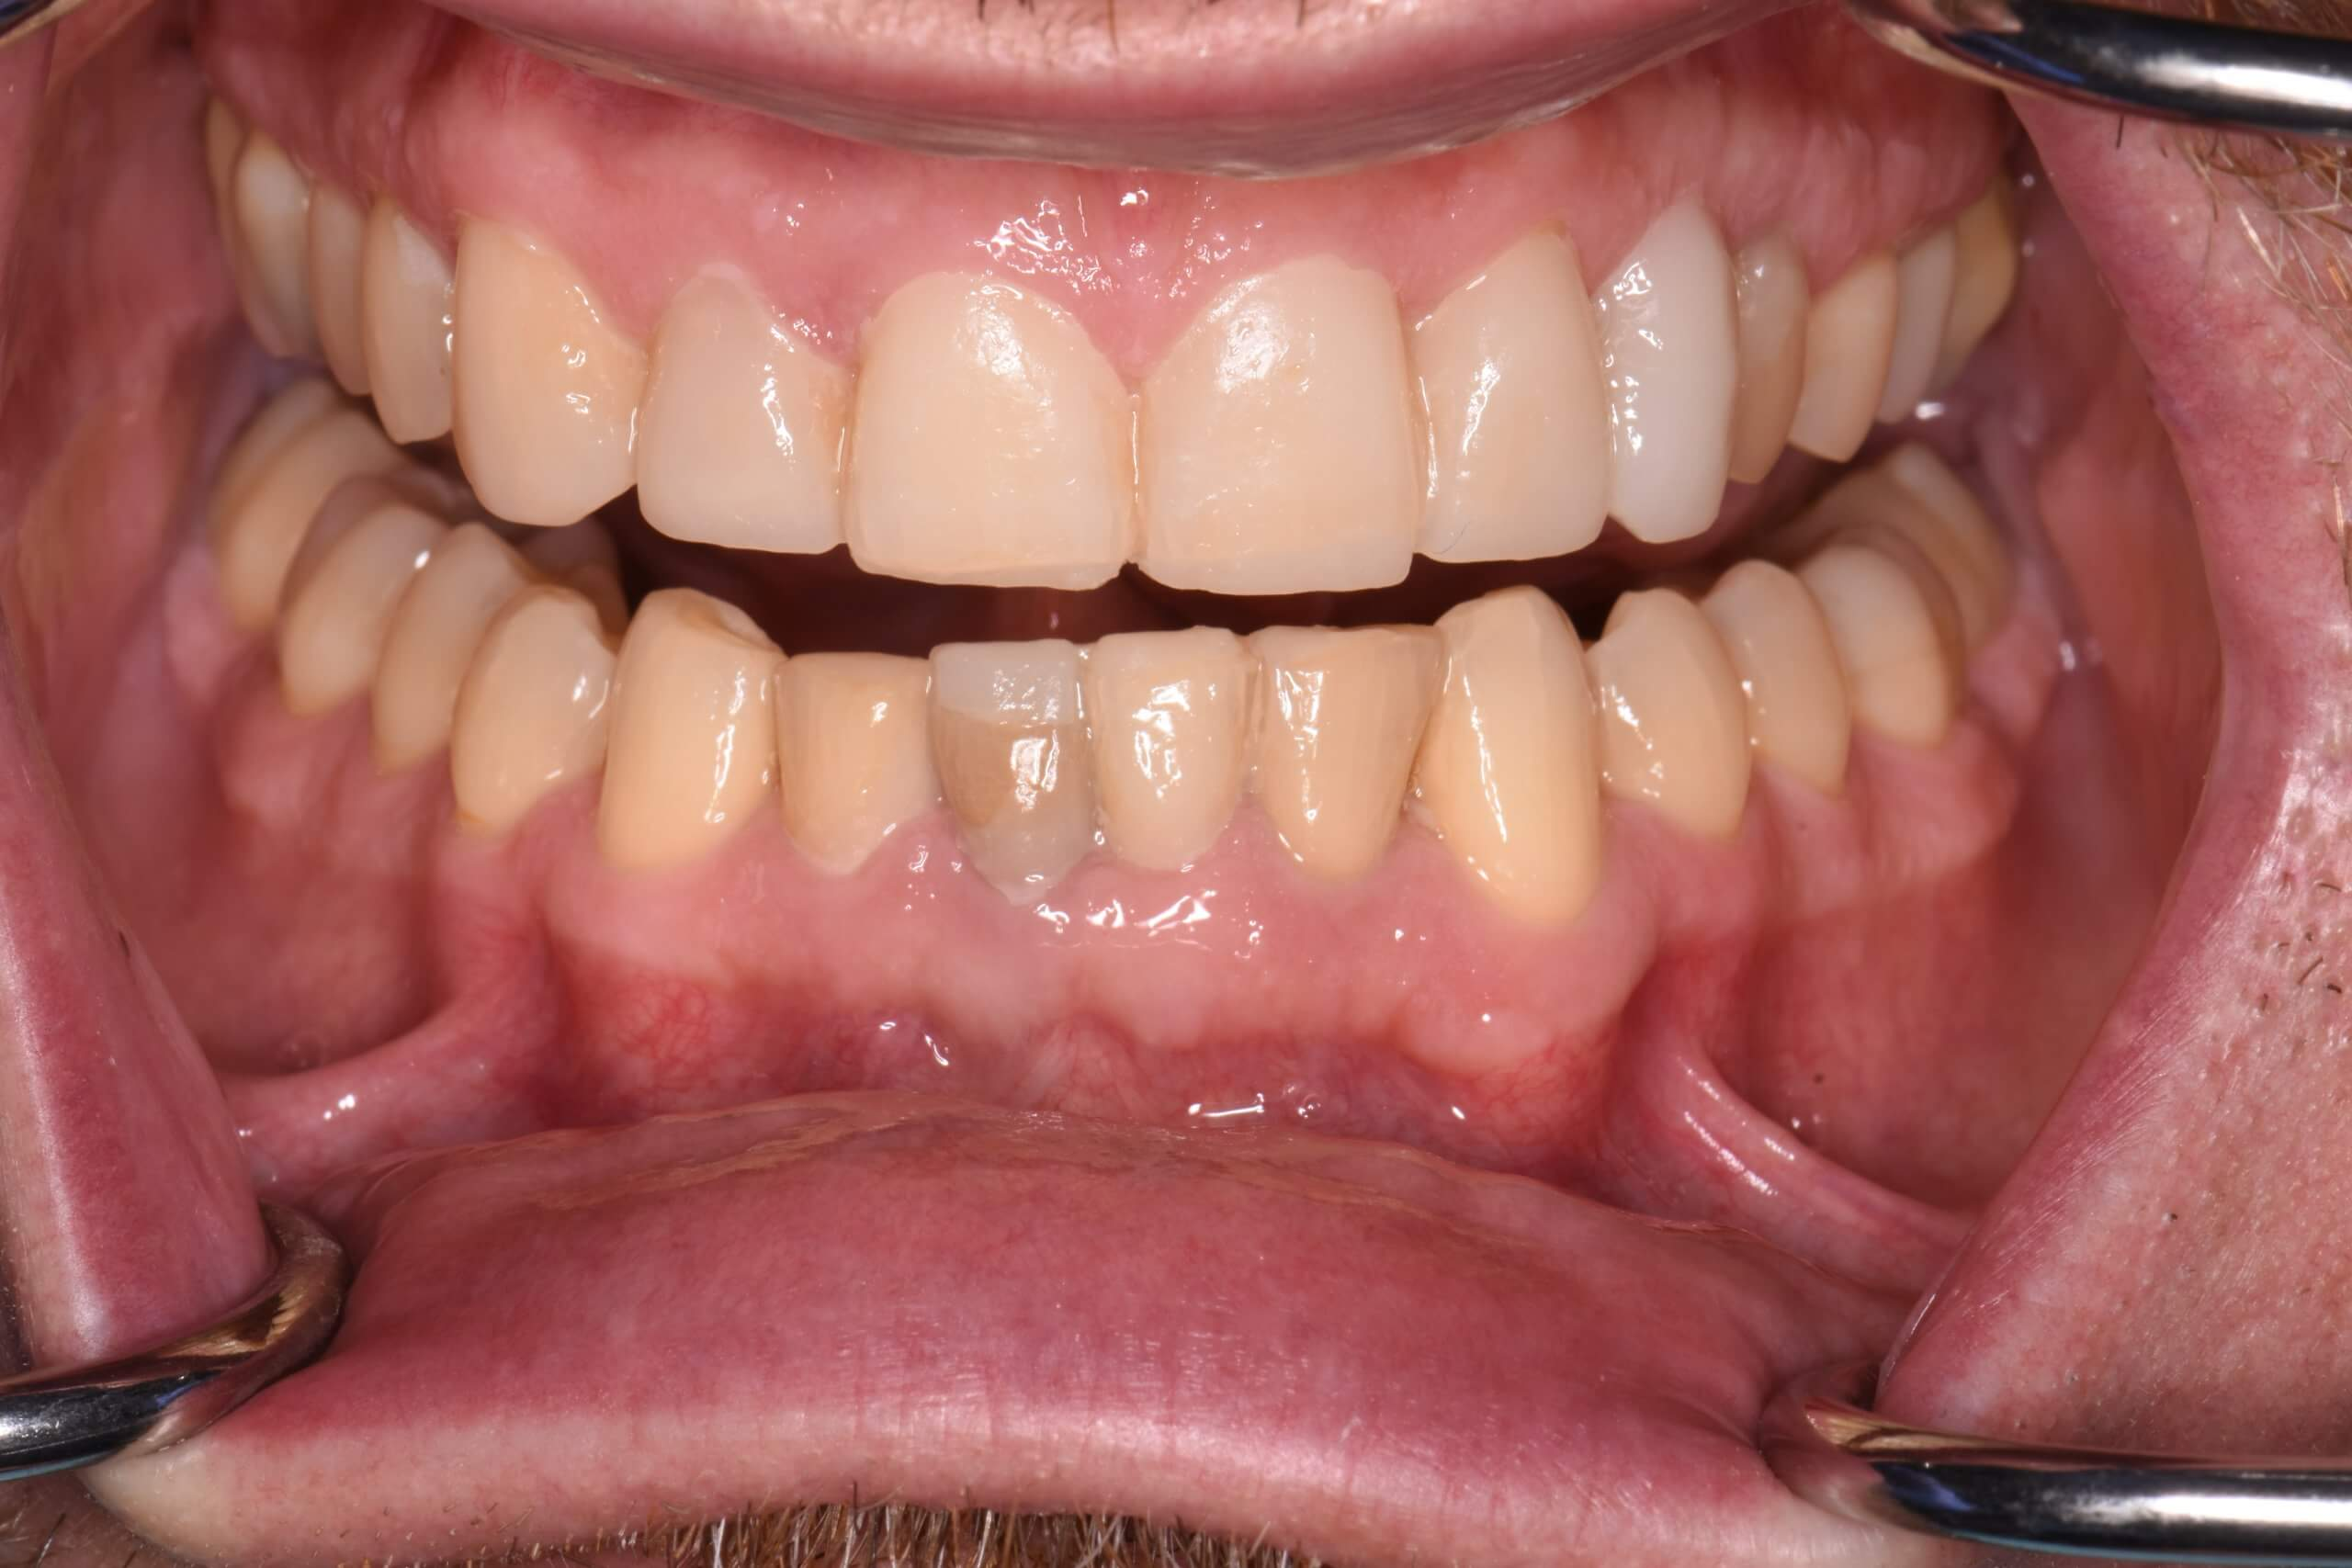 Mock up of proposed final position for teeth